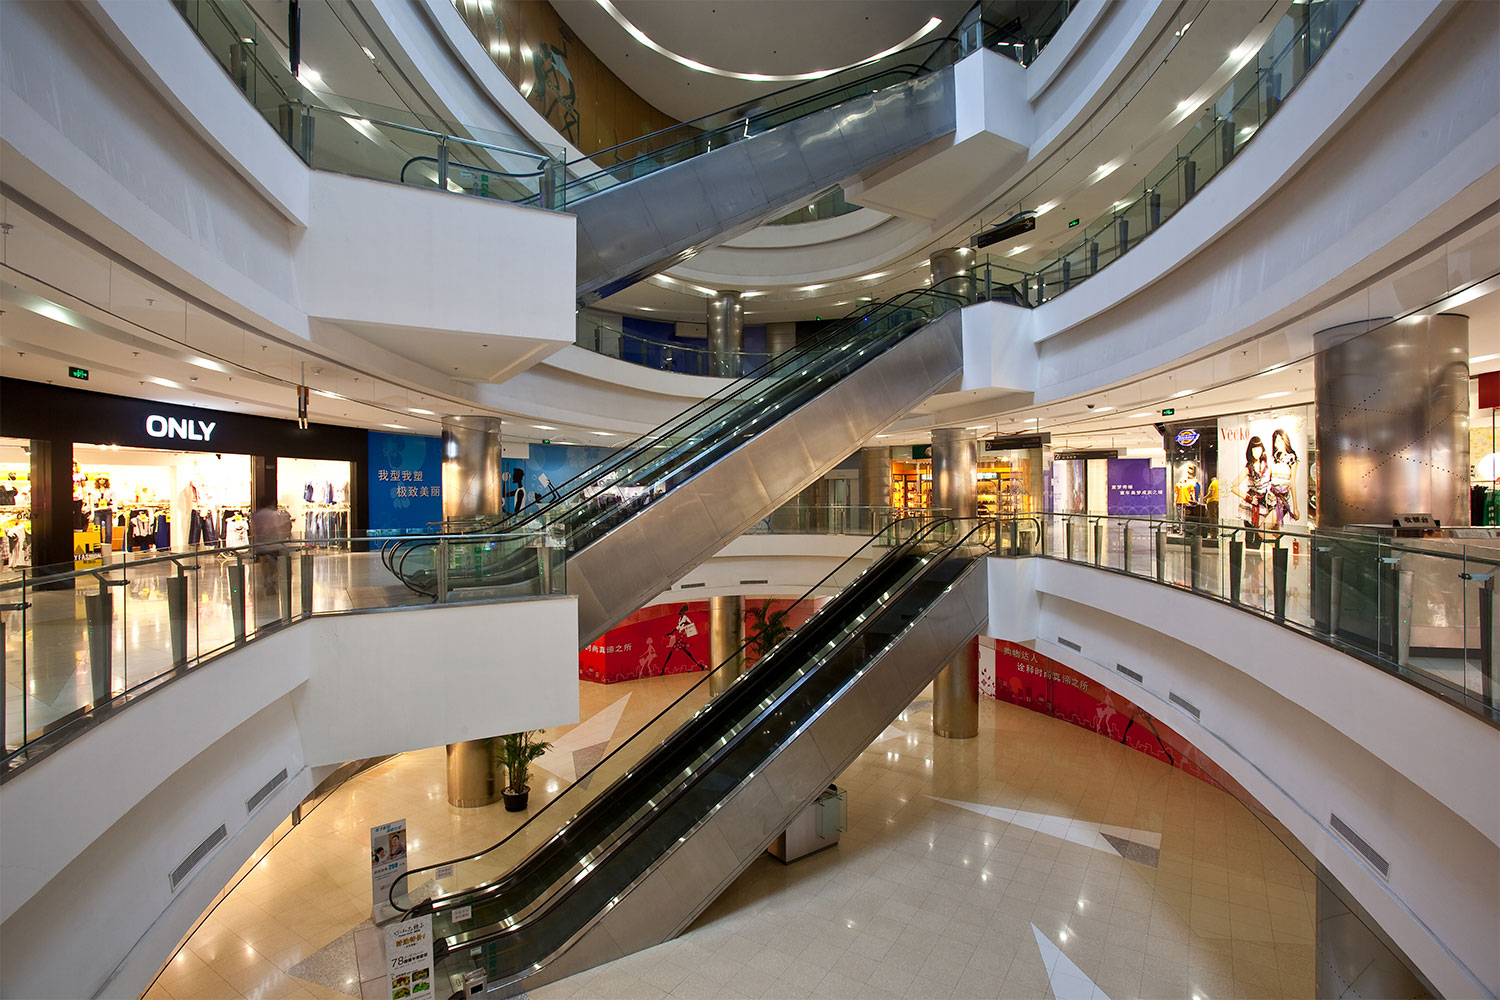 Projects_1500_Minhang-Retail_07.jpg